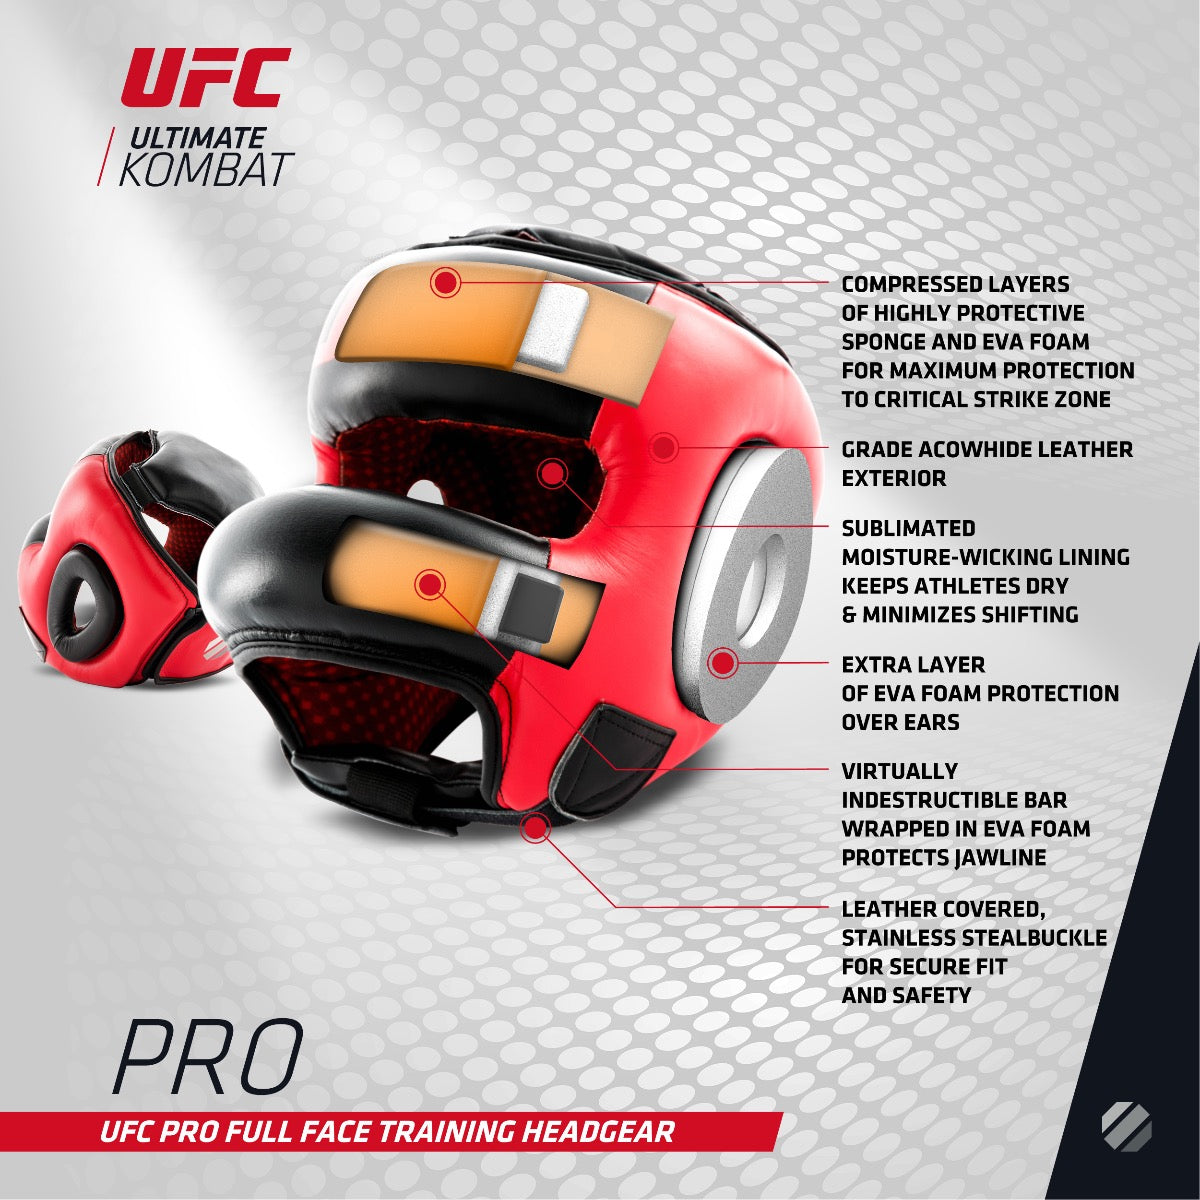 Cross section of UFC Pro Full Face Headgear features